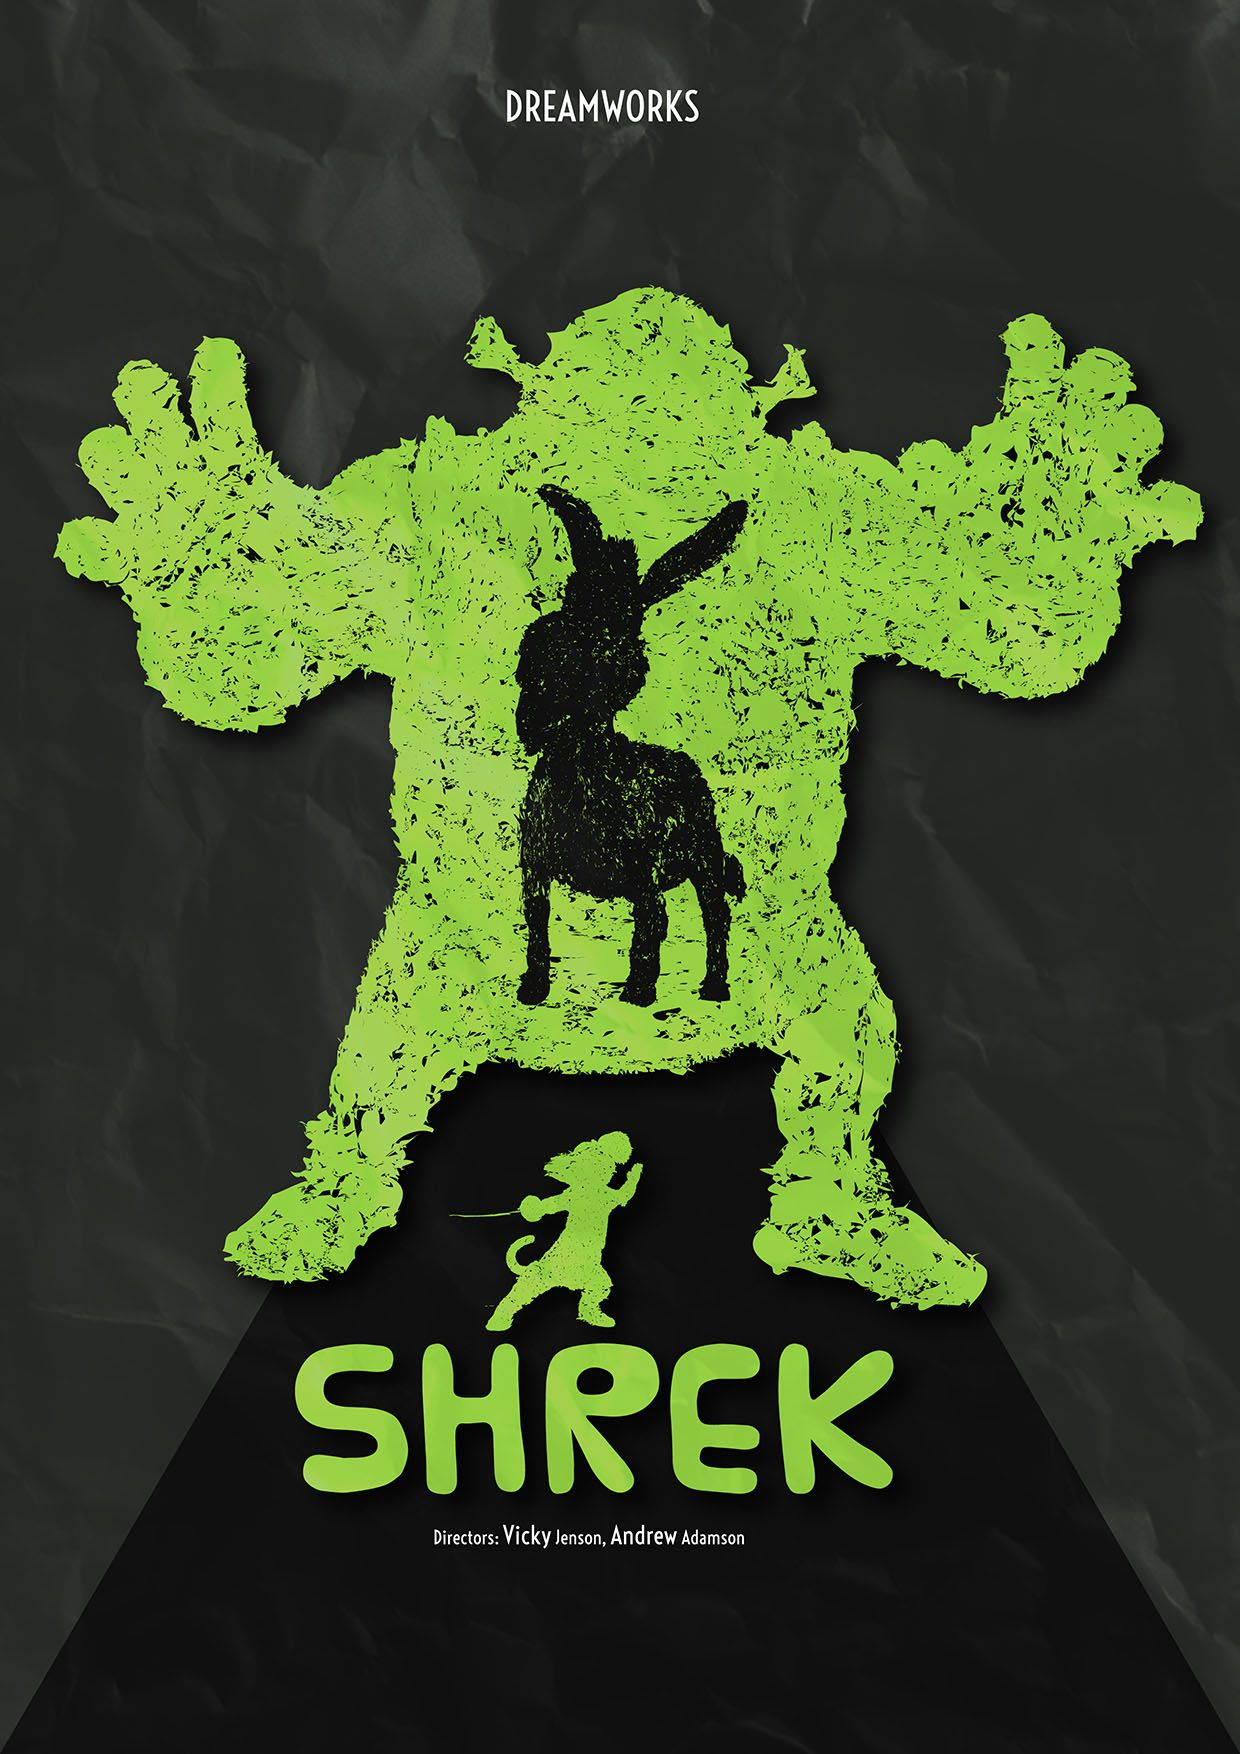 Shrek Movie Poster - Simple series